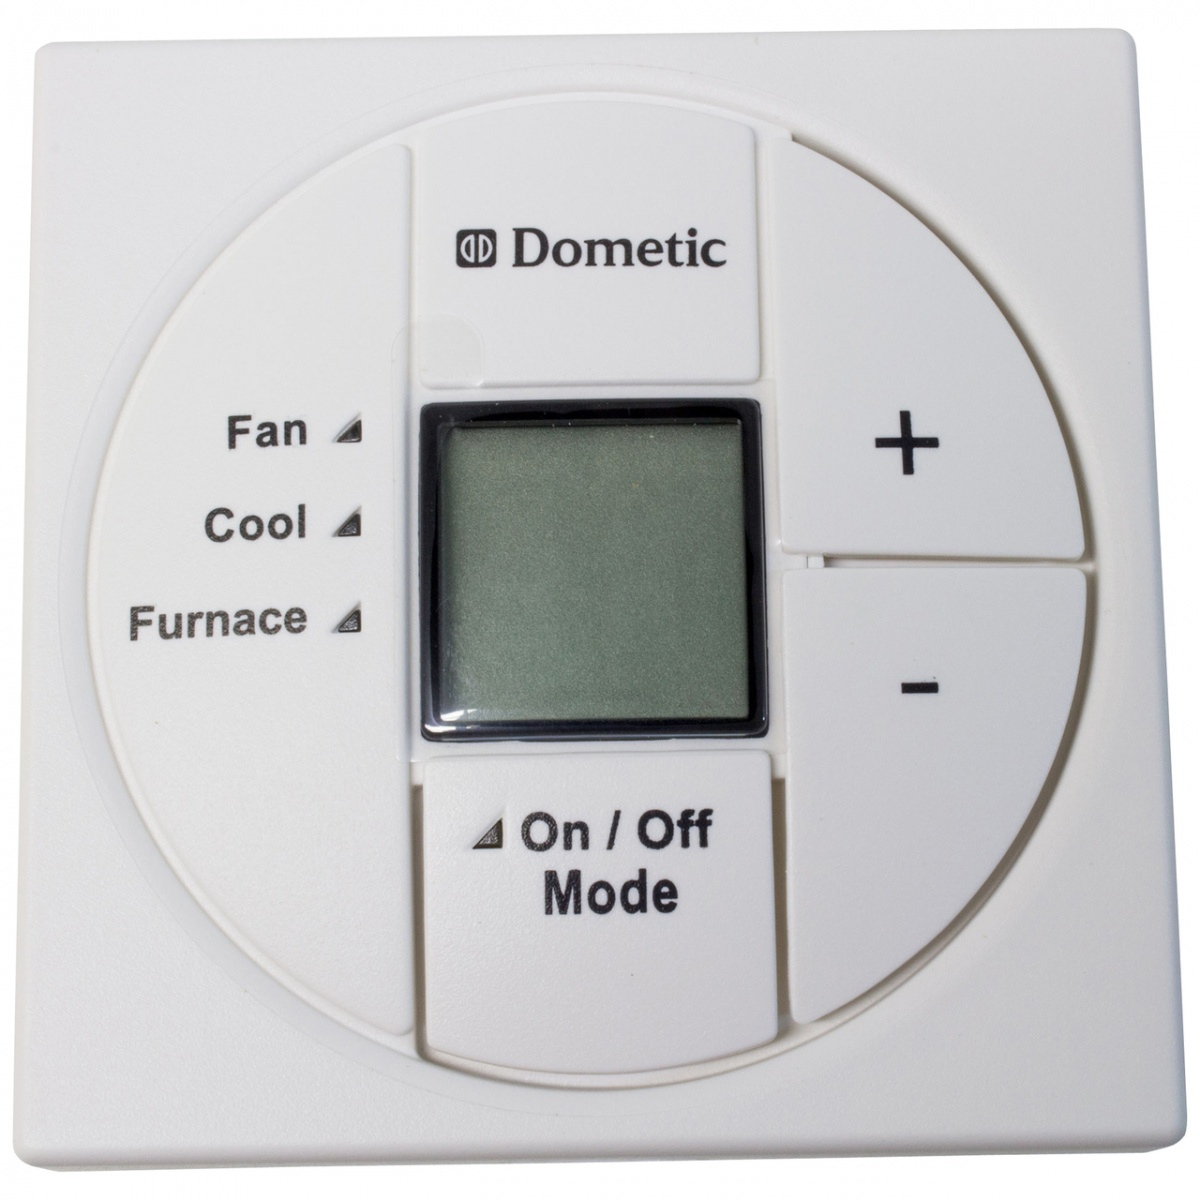 New Dometic Thermostat Changeout Forest River Forums